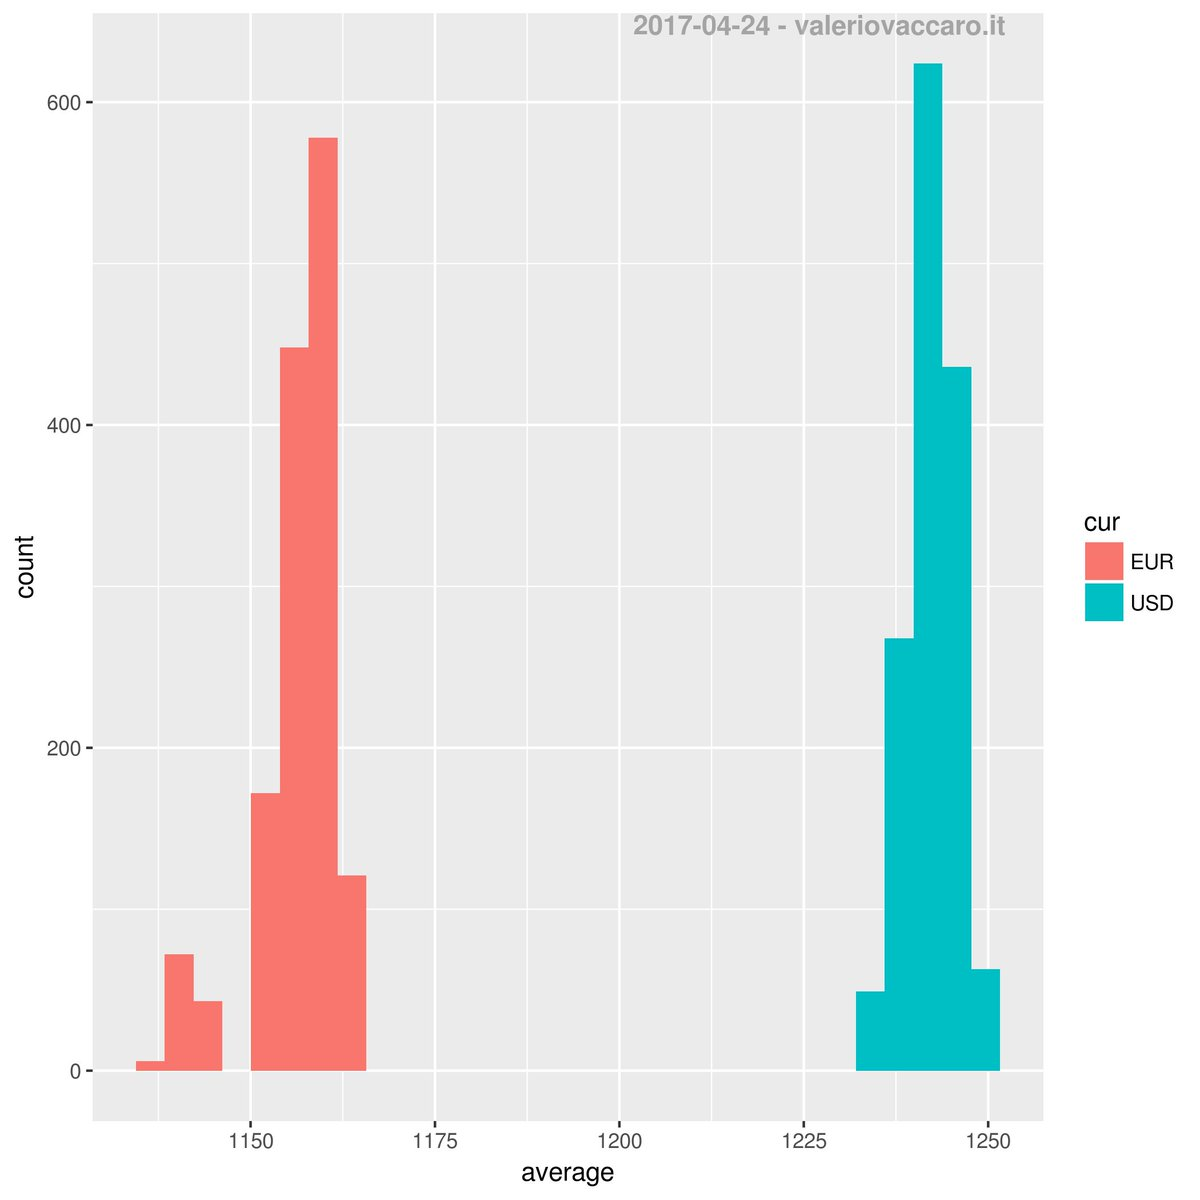 Histogram of bitcoin value in last 24 hours #bitcoin #blockchain #criptocurrency #R #ggplot2<br>http://pic.twitter.com/uehoqsIgpN